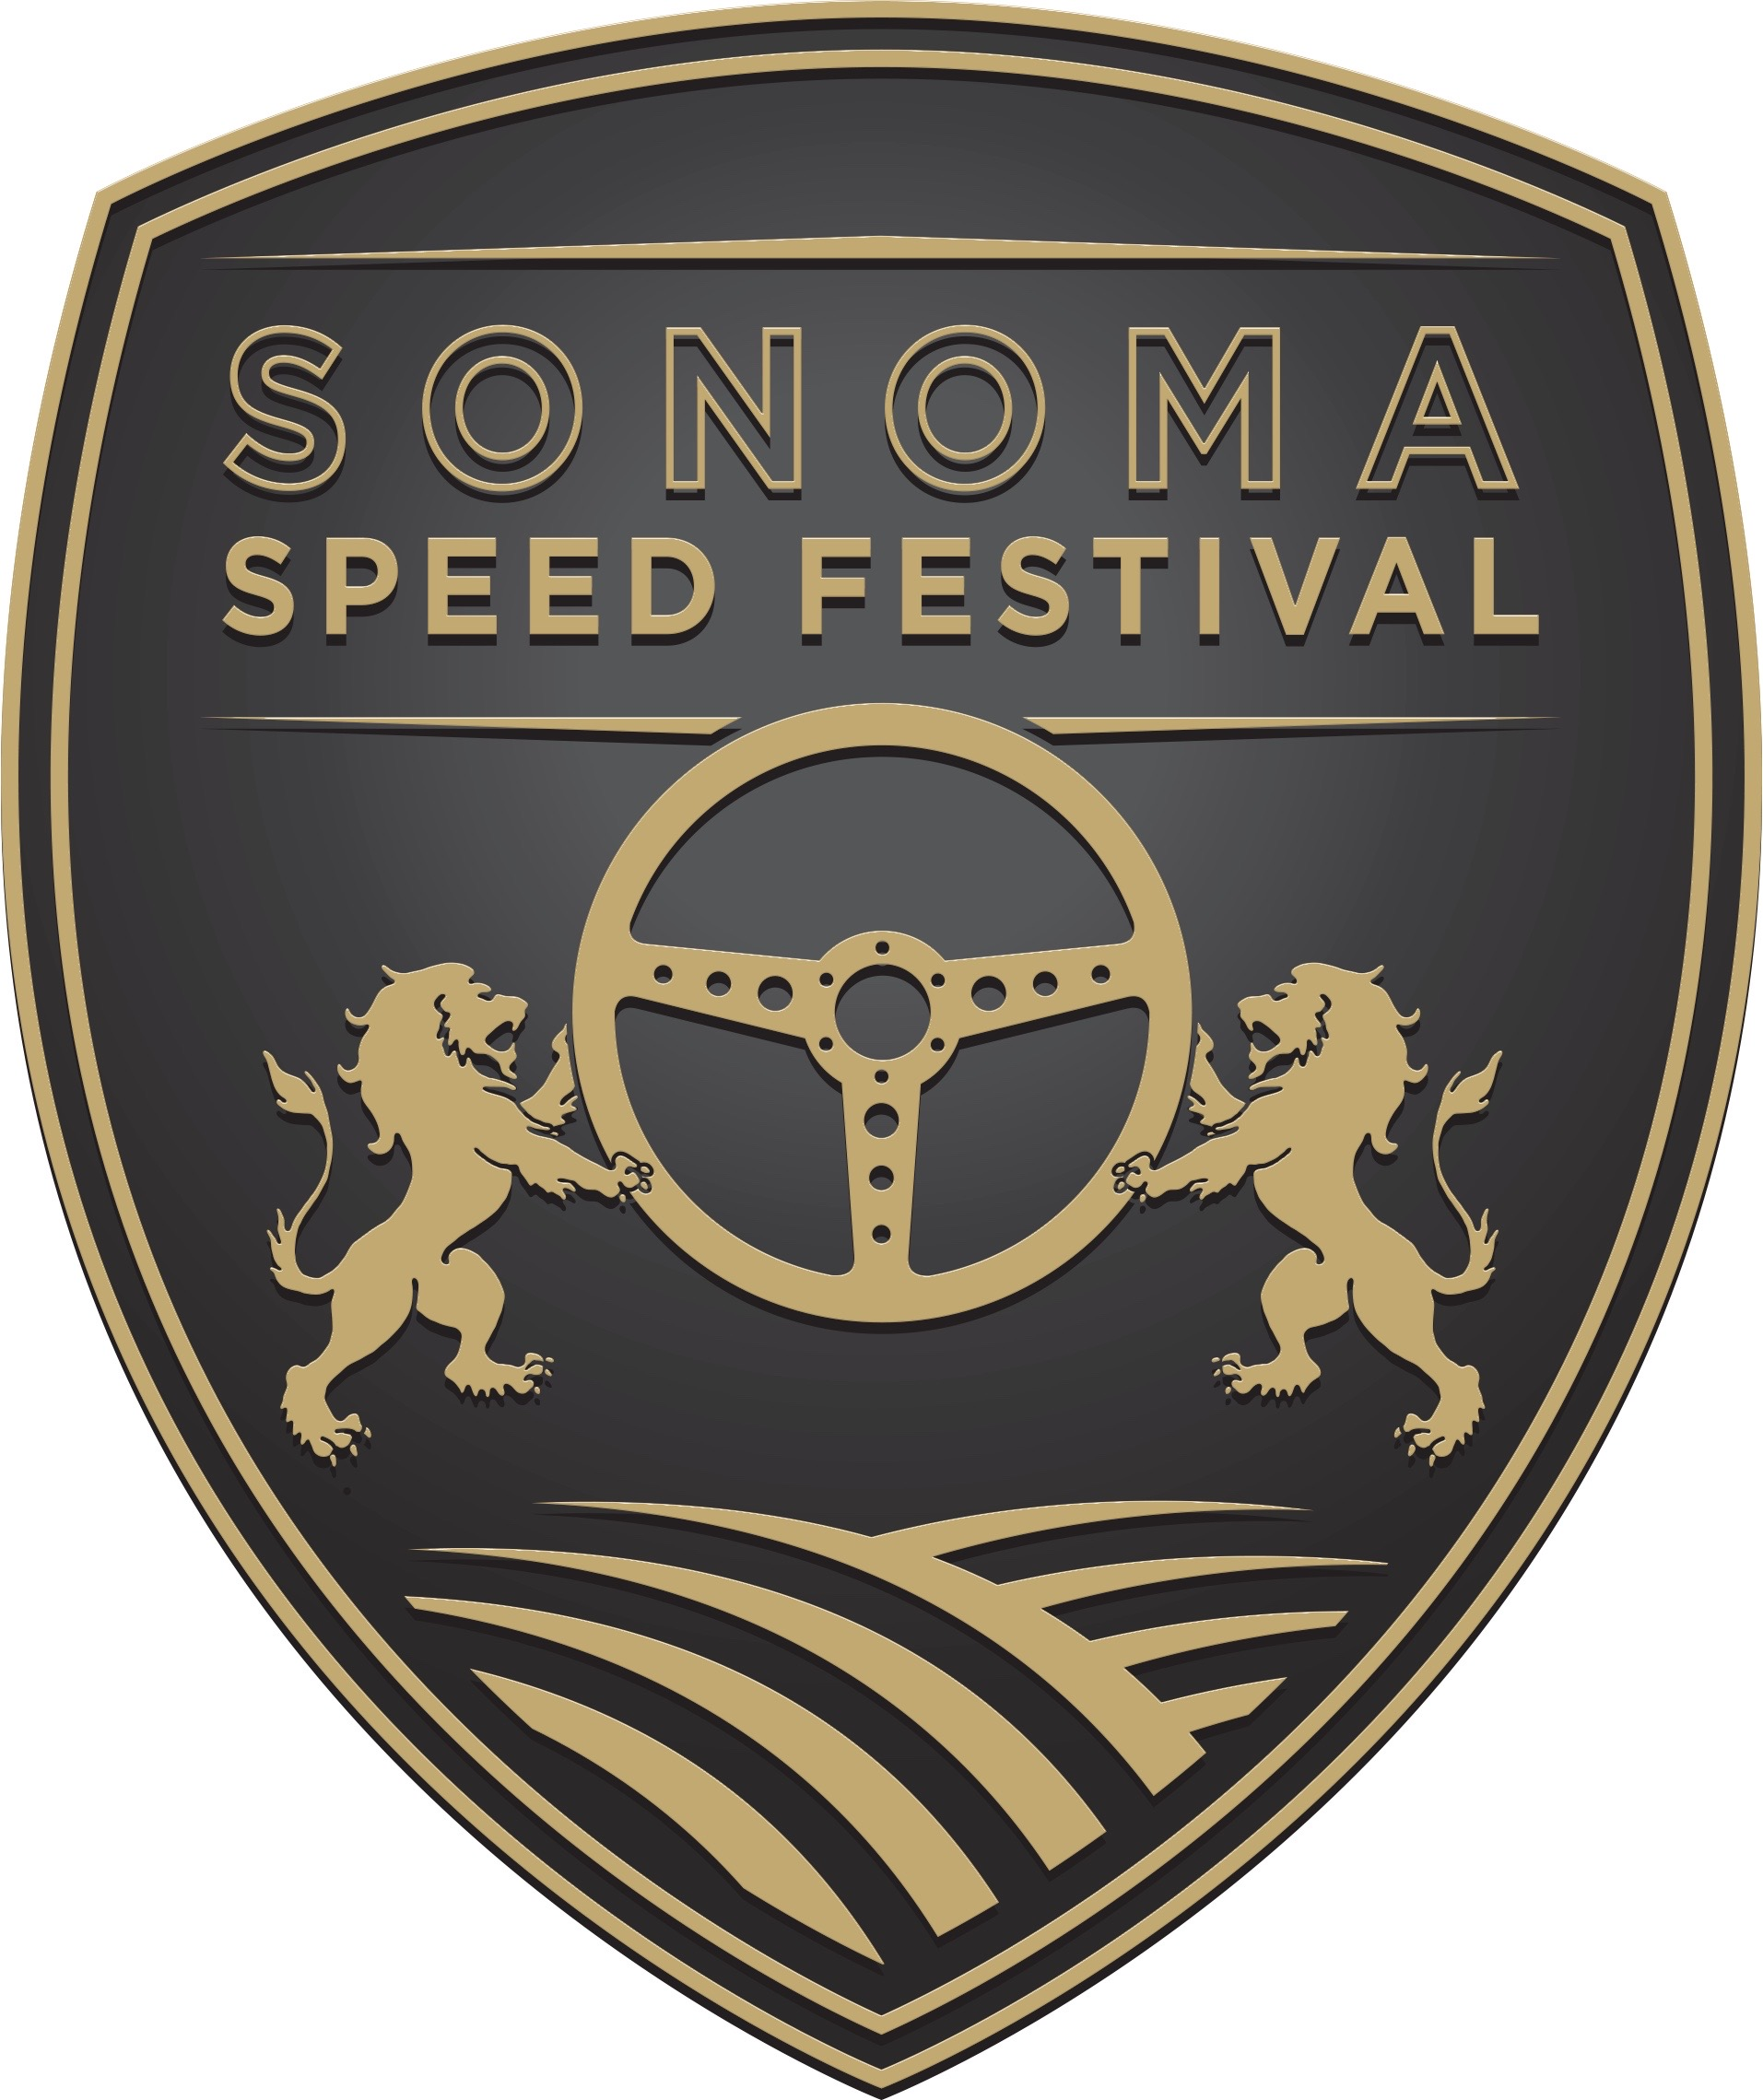 Sonoma Speed Festival, Sonoma Speed Festival promises Goodwood-style event, ClassicCars.com Journal